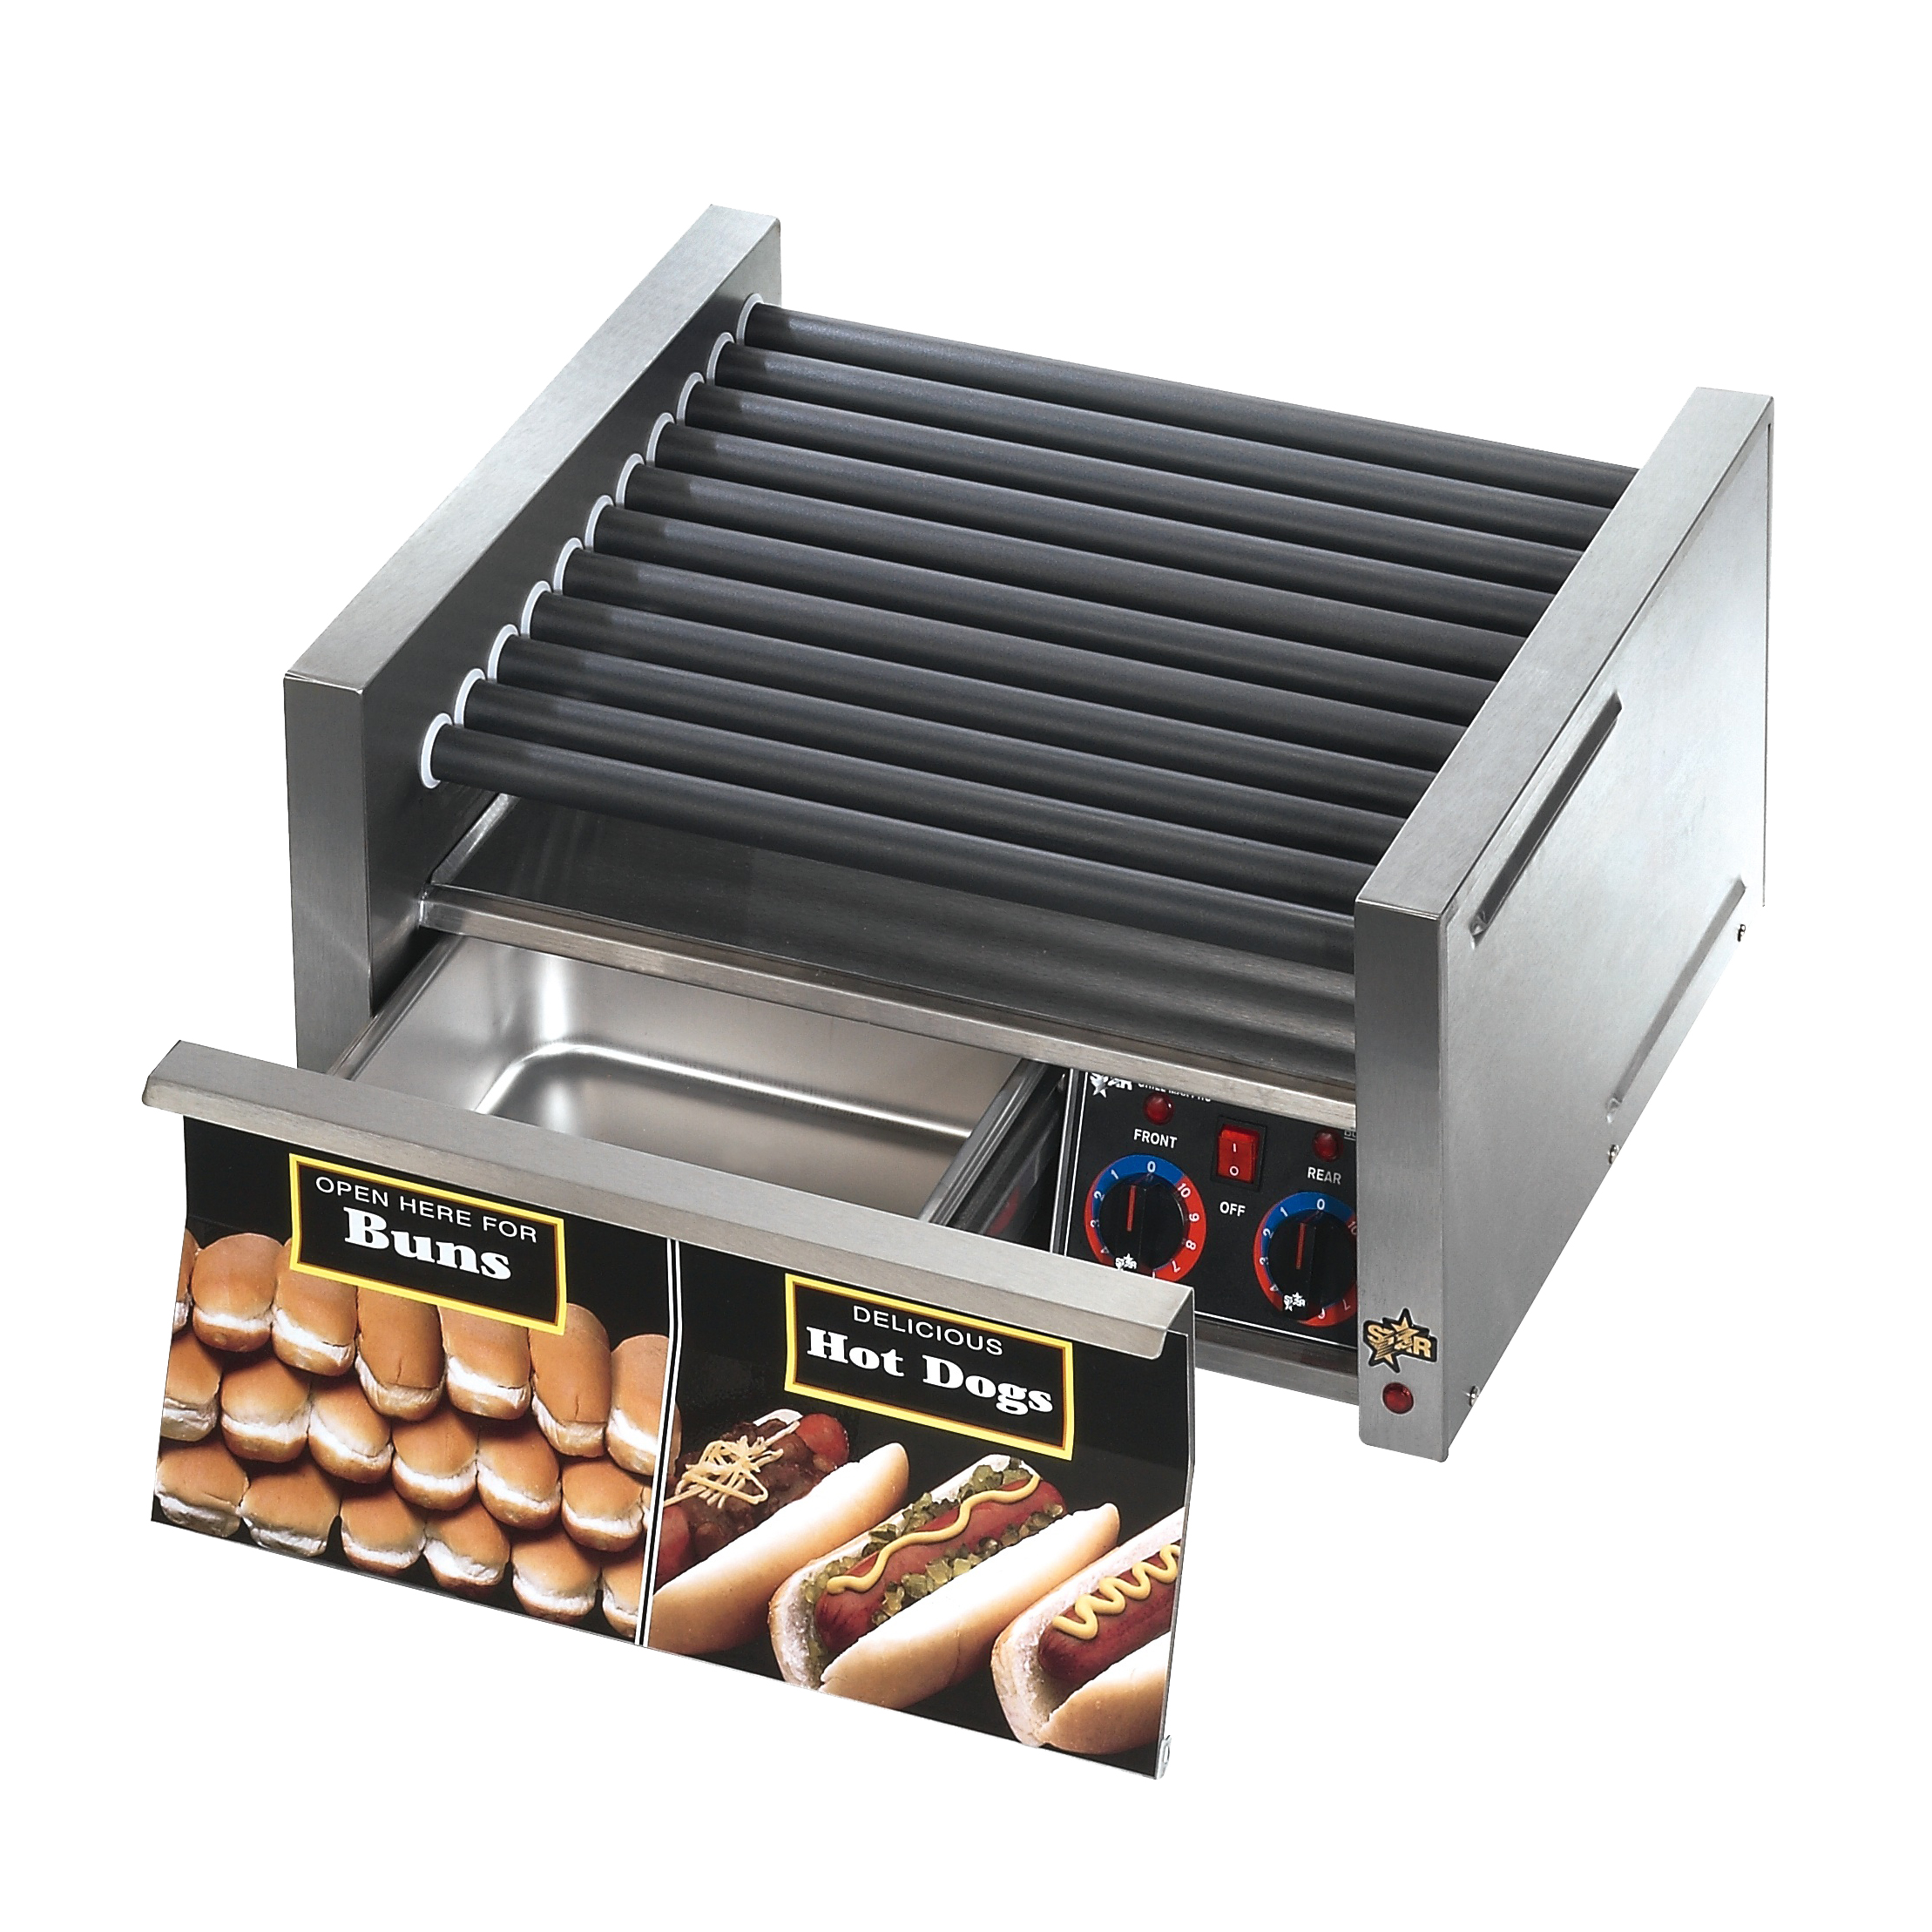 Star 30SCBDE hot dog grill